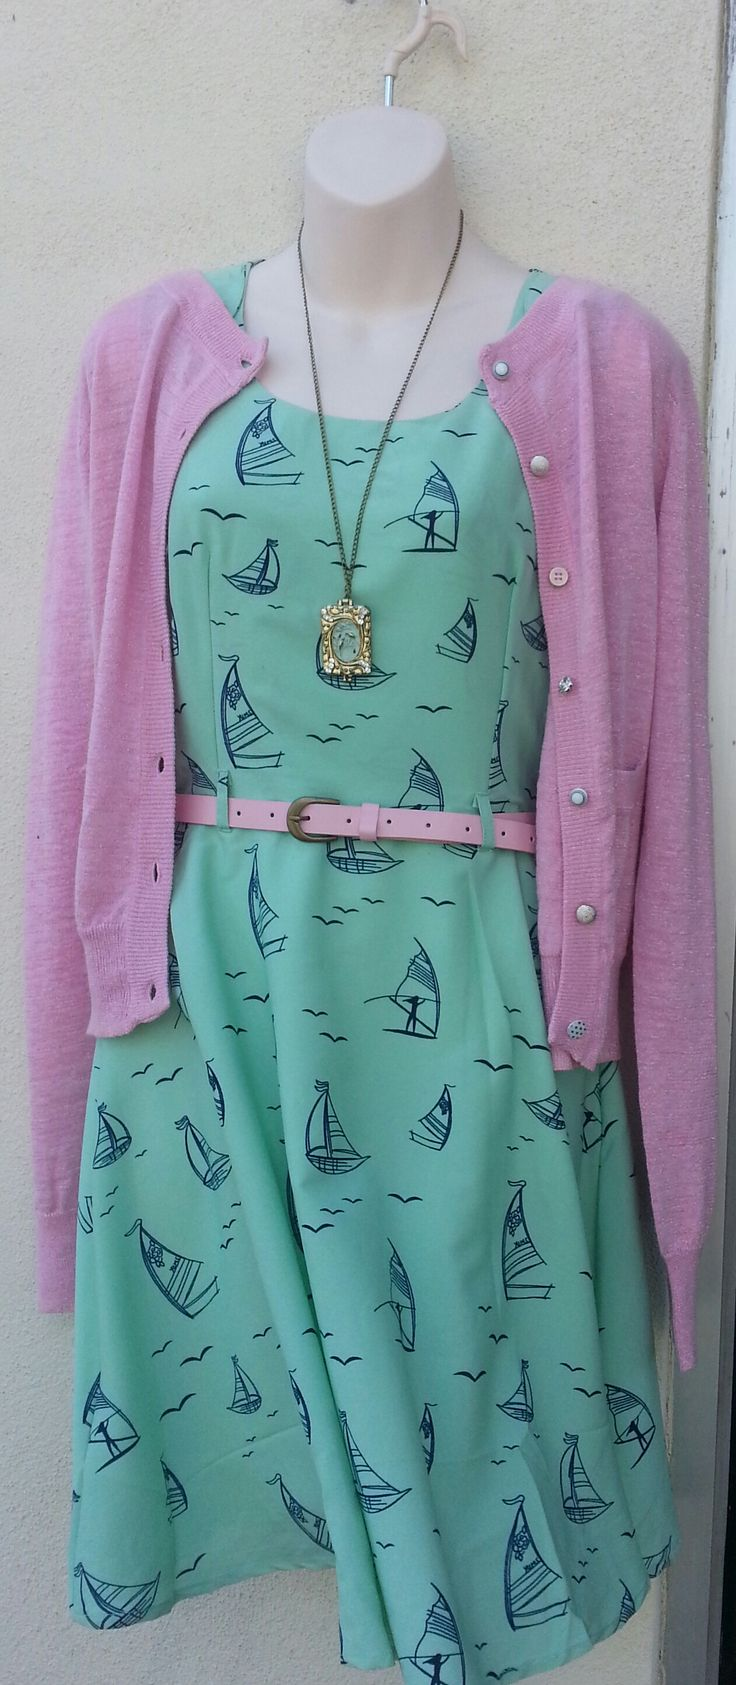 A little pink lurex cardy over boats